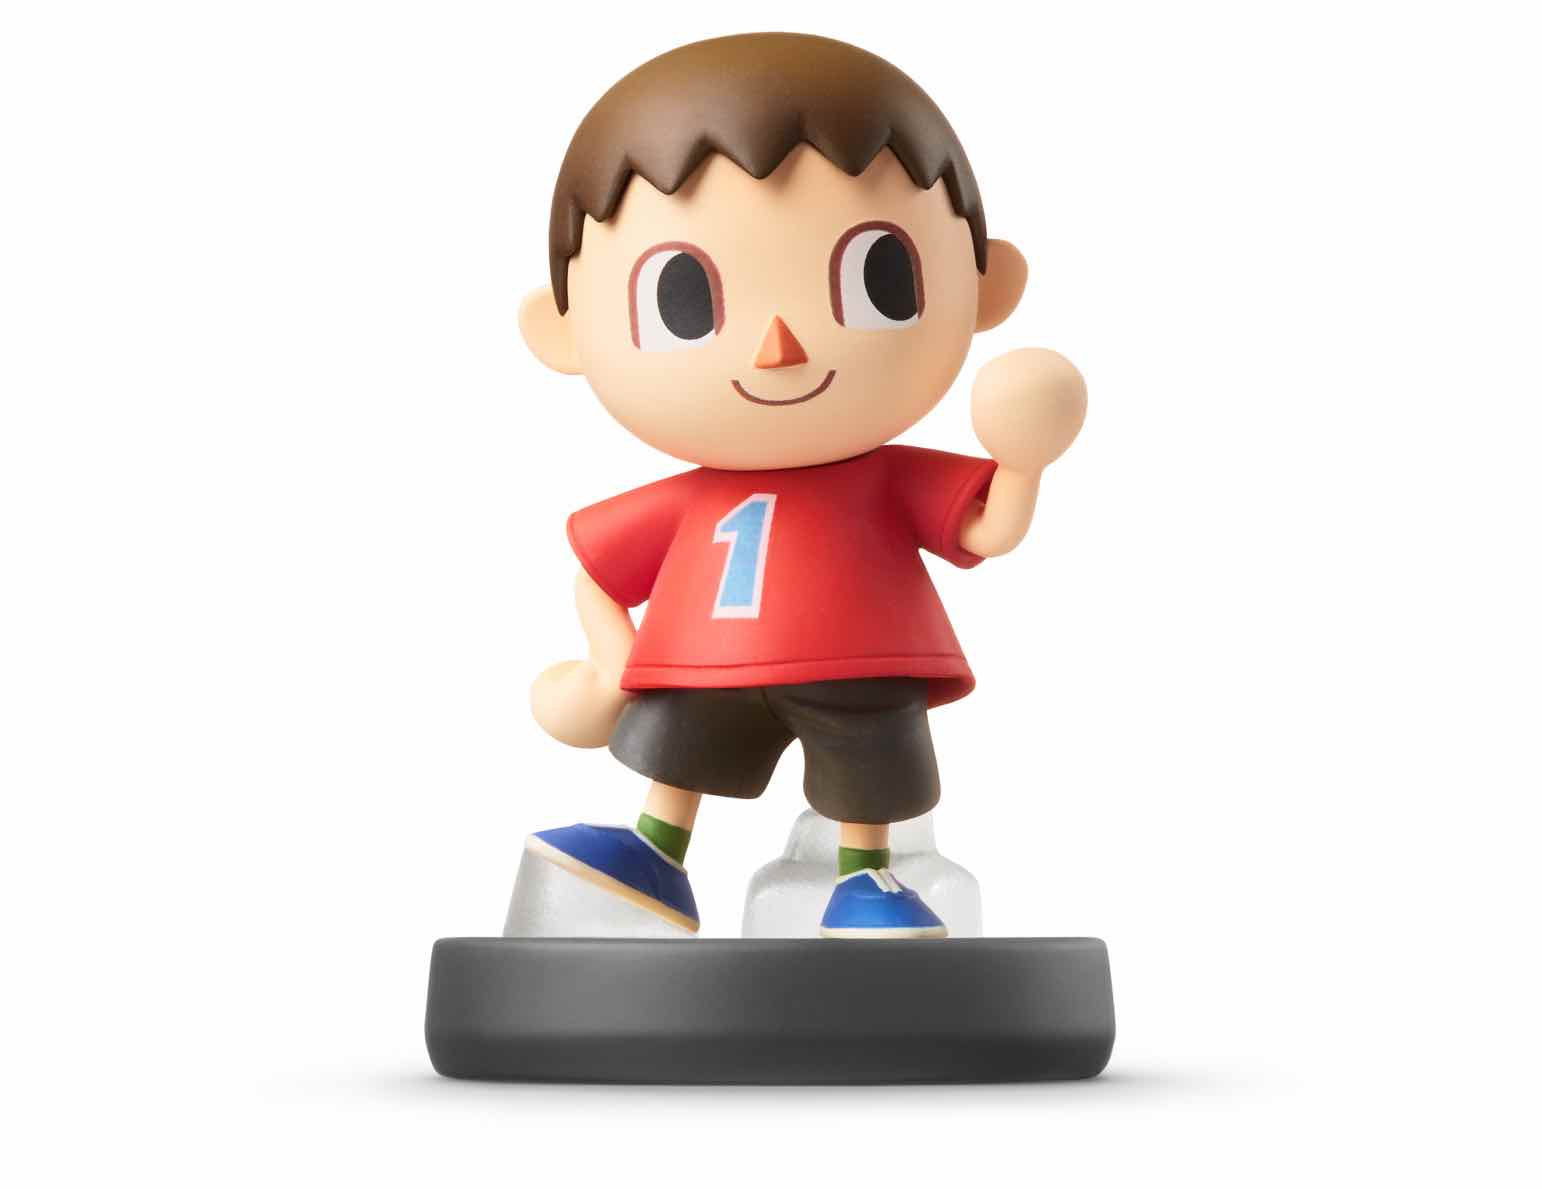 villager-amiibo-figure